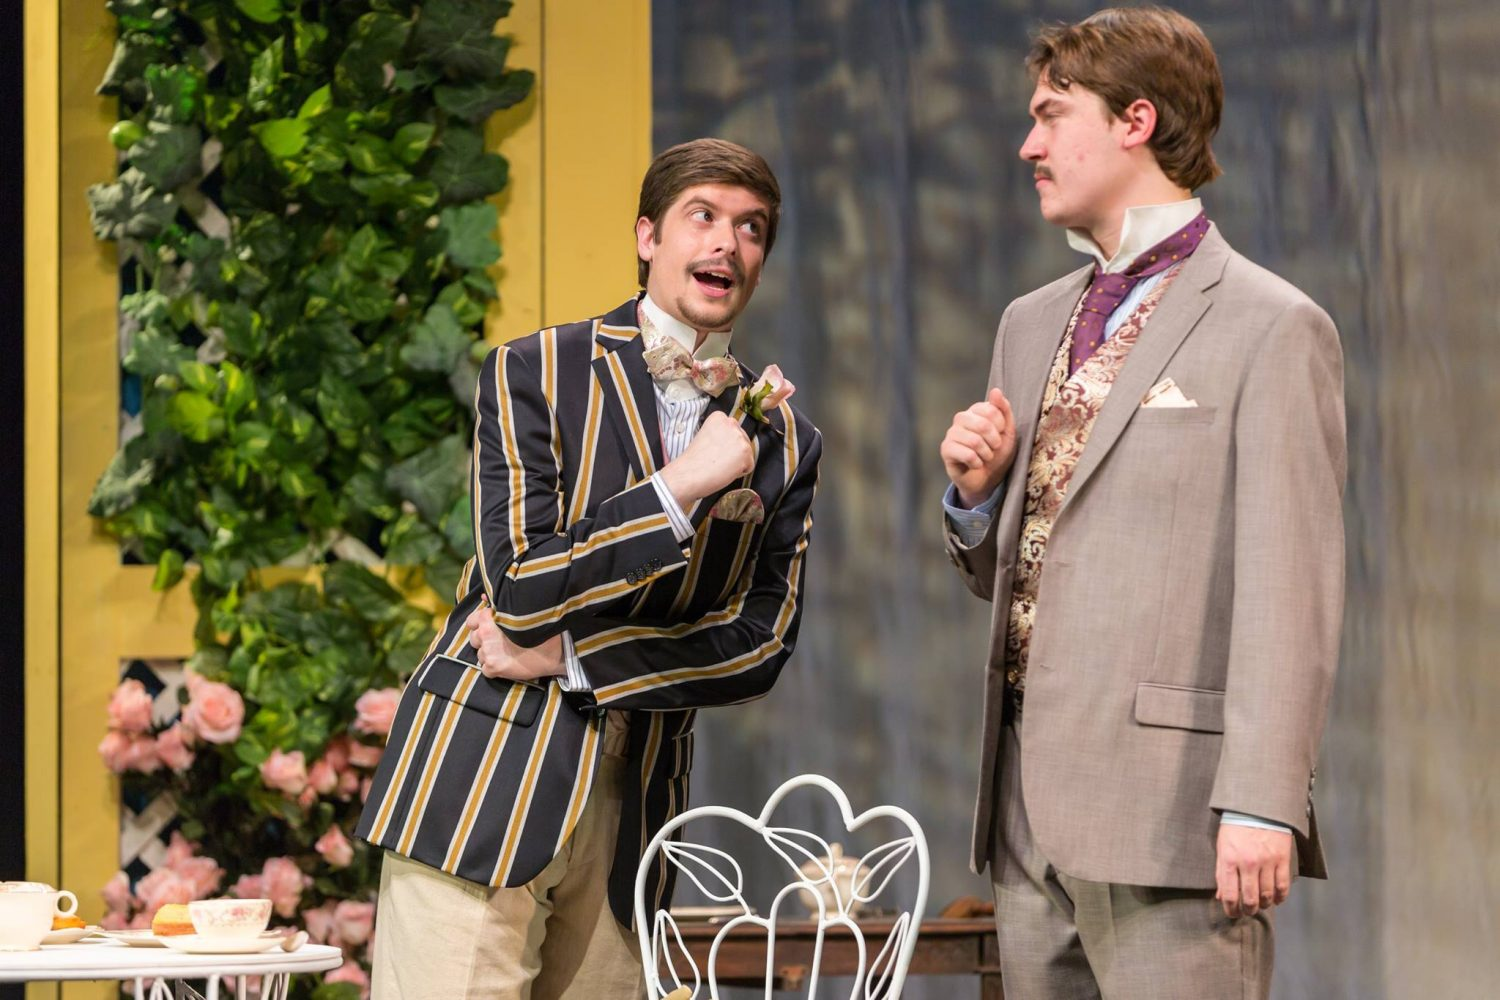 %E2%80%98Importance+of+Being+Earnest%E2%80%99%3A+Witty%2C+silly+and+downright+true